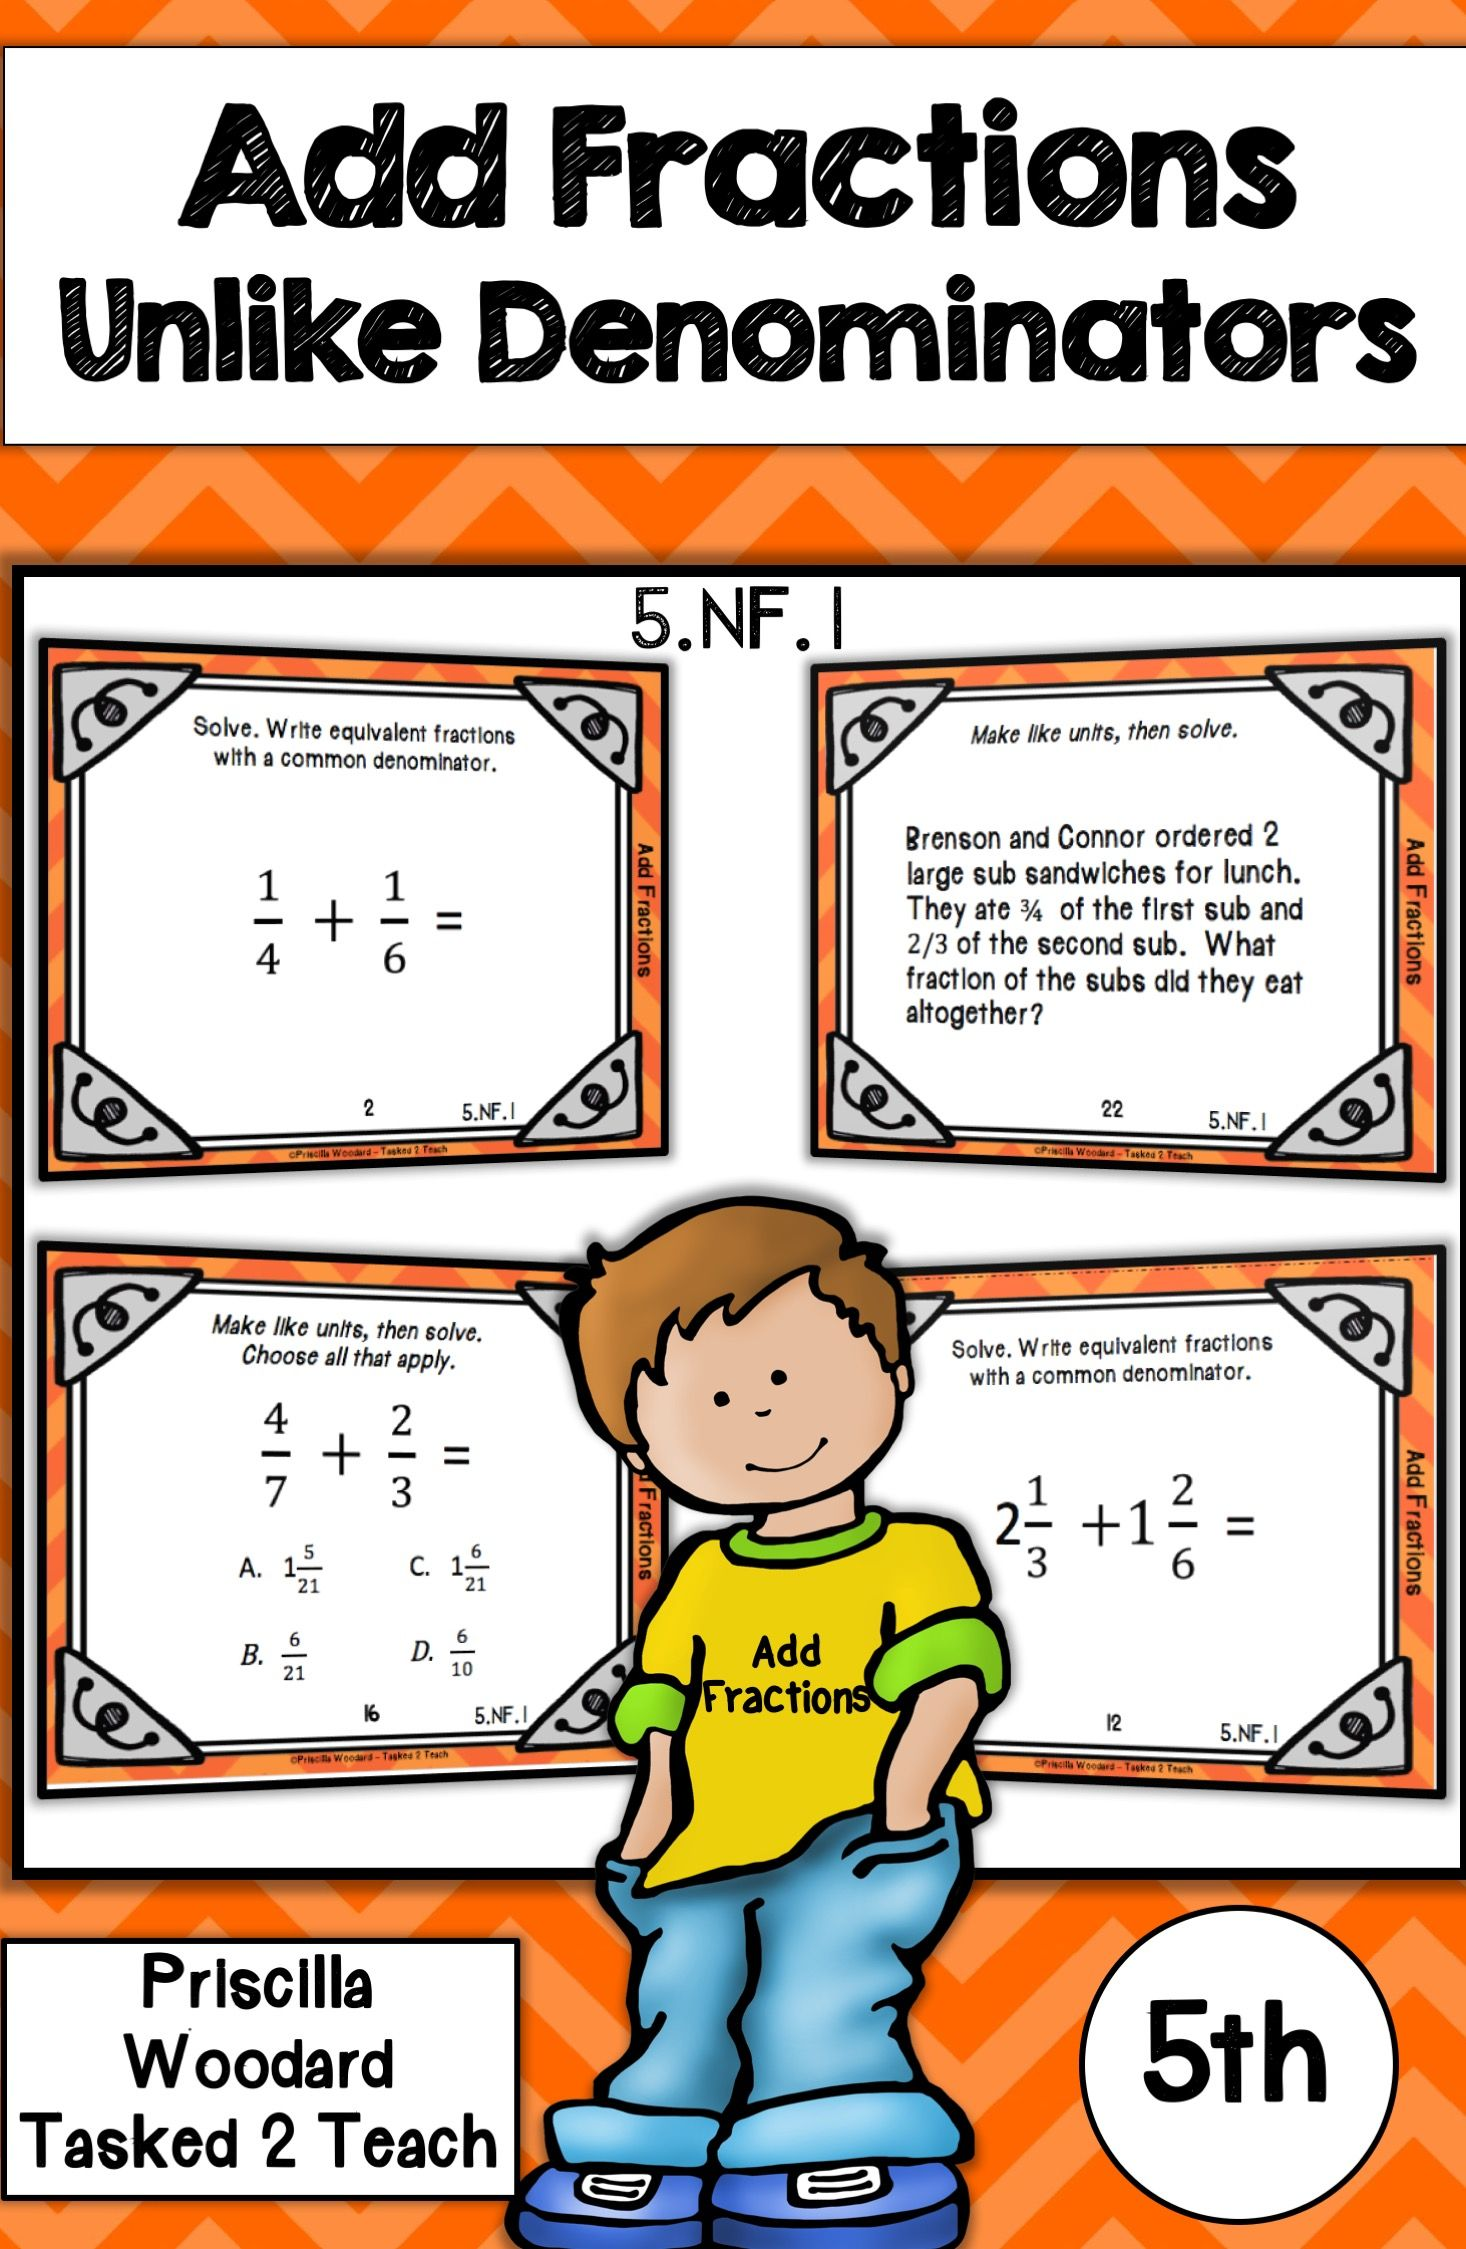 Add fractions with unlike denominators 5th grade 5nf1